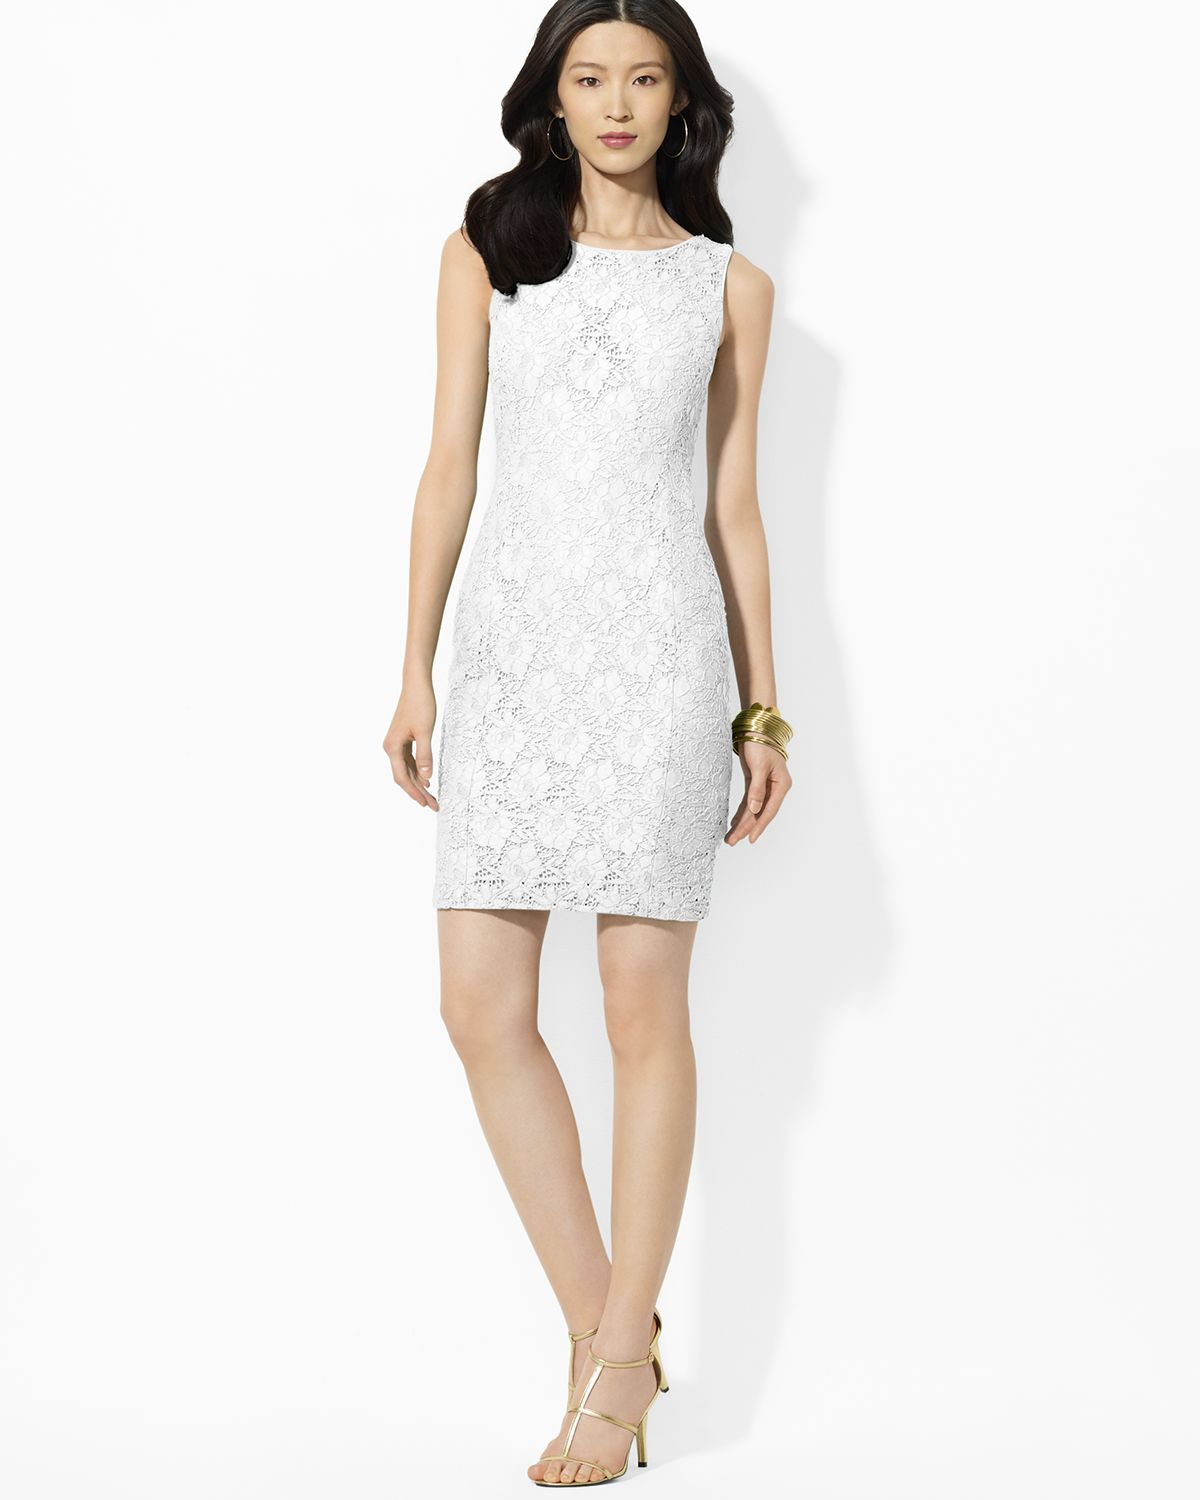 Ralph lauren Lauren Dress Sleeveless Lace Sheath in White | Lyst